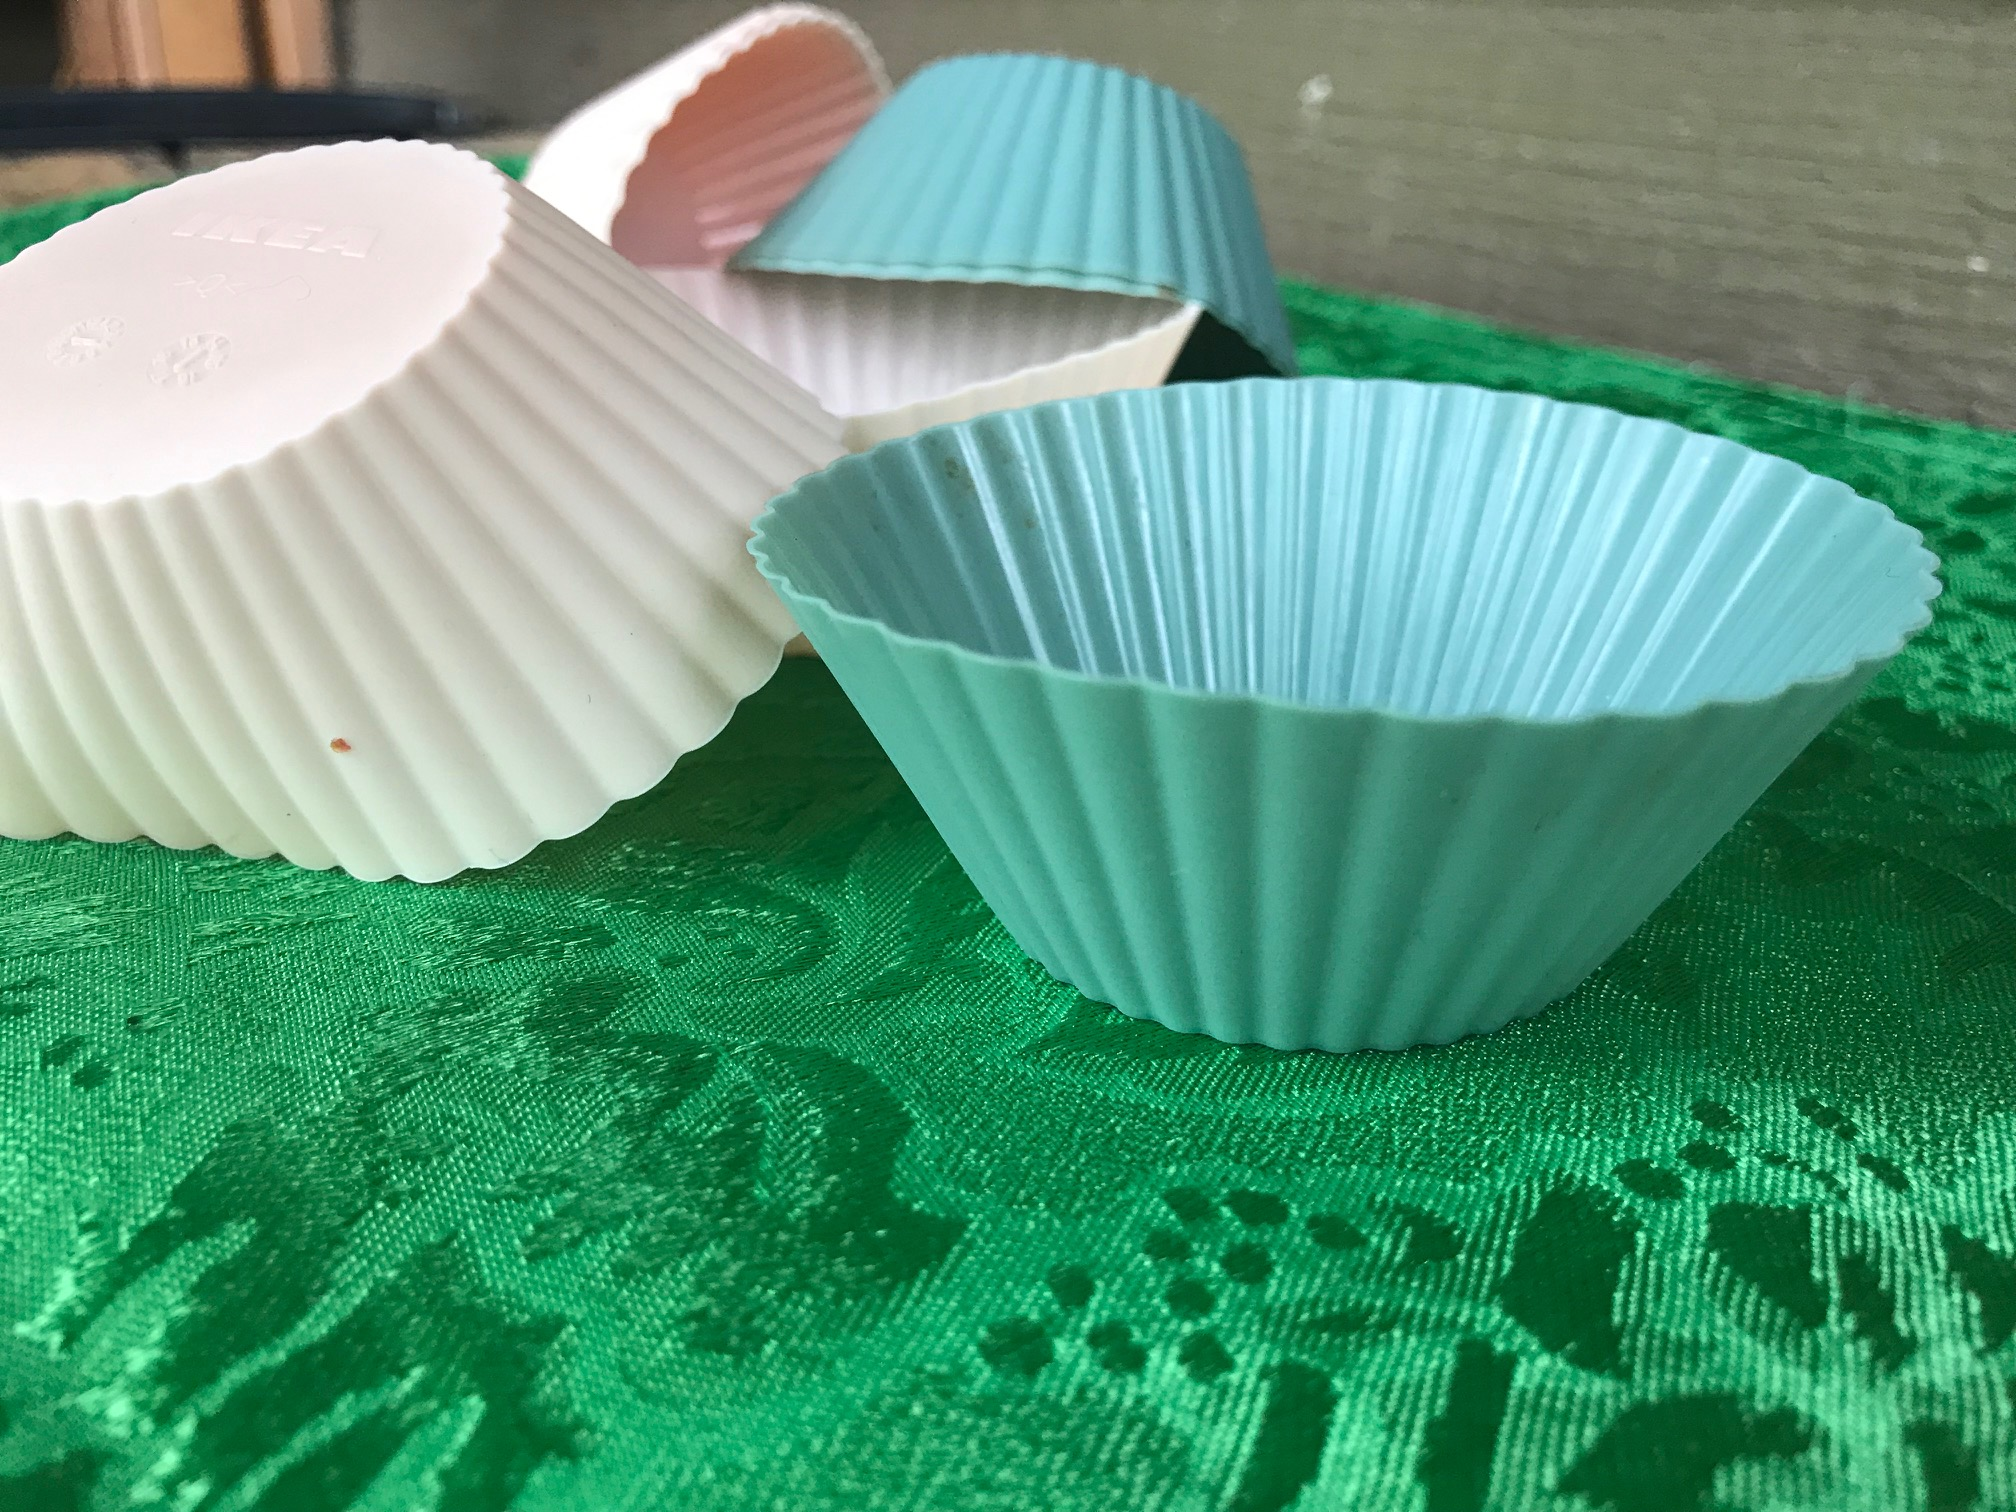 2018 Ikea Reusable Silicone Muffin Cups: Cadmium FREE!!!